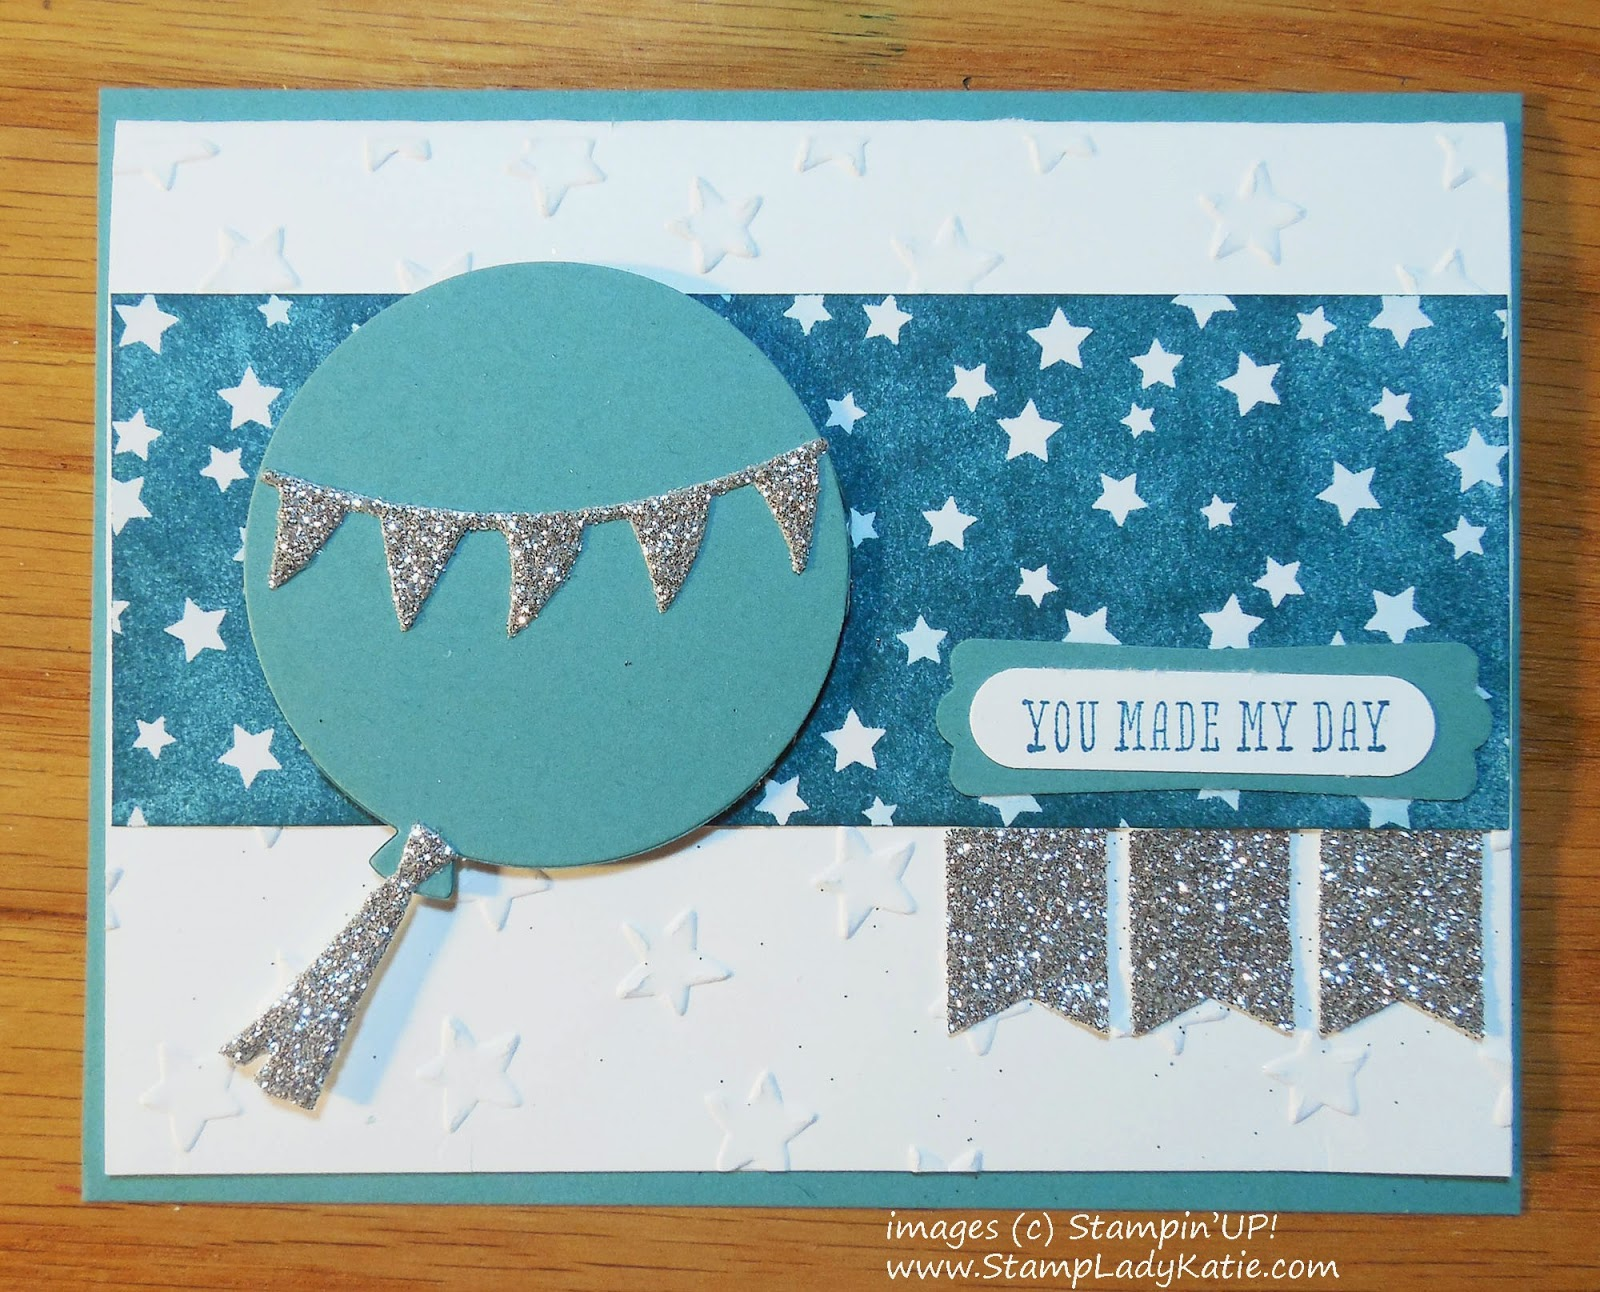 Card made with Stampin'UP!'s Balloon Framelits Dies and Irresistibly Yours DSP